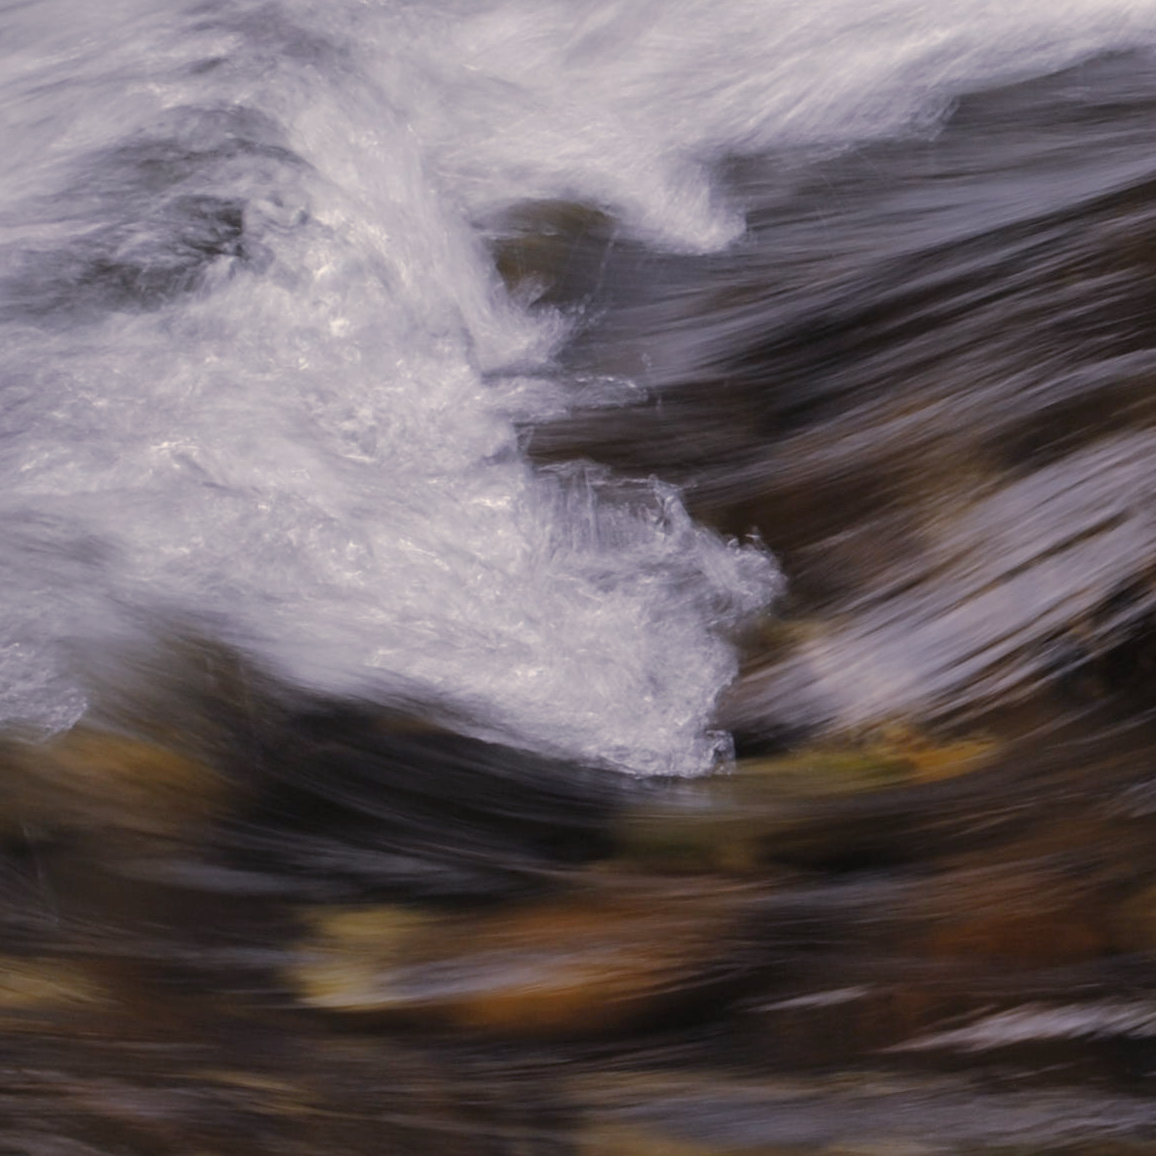 long exposure of river rapids